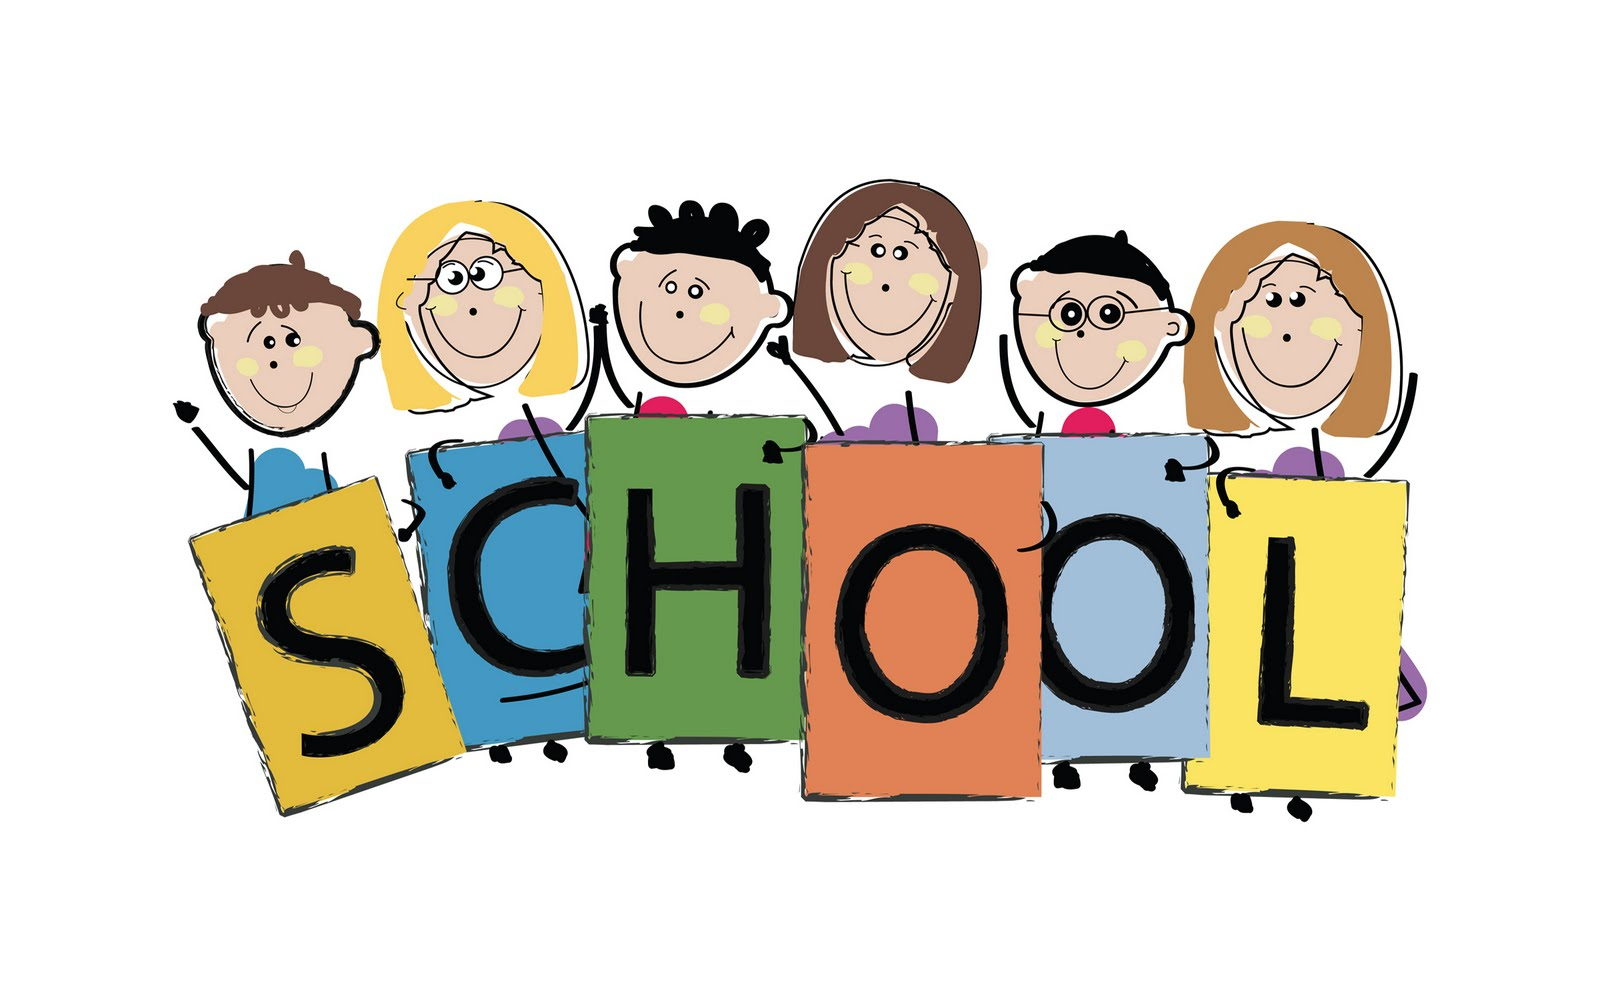 19 School Images Pictures Free Cliparts That You Can Download To You